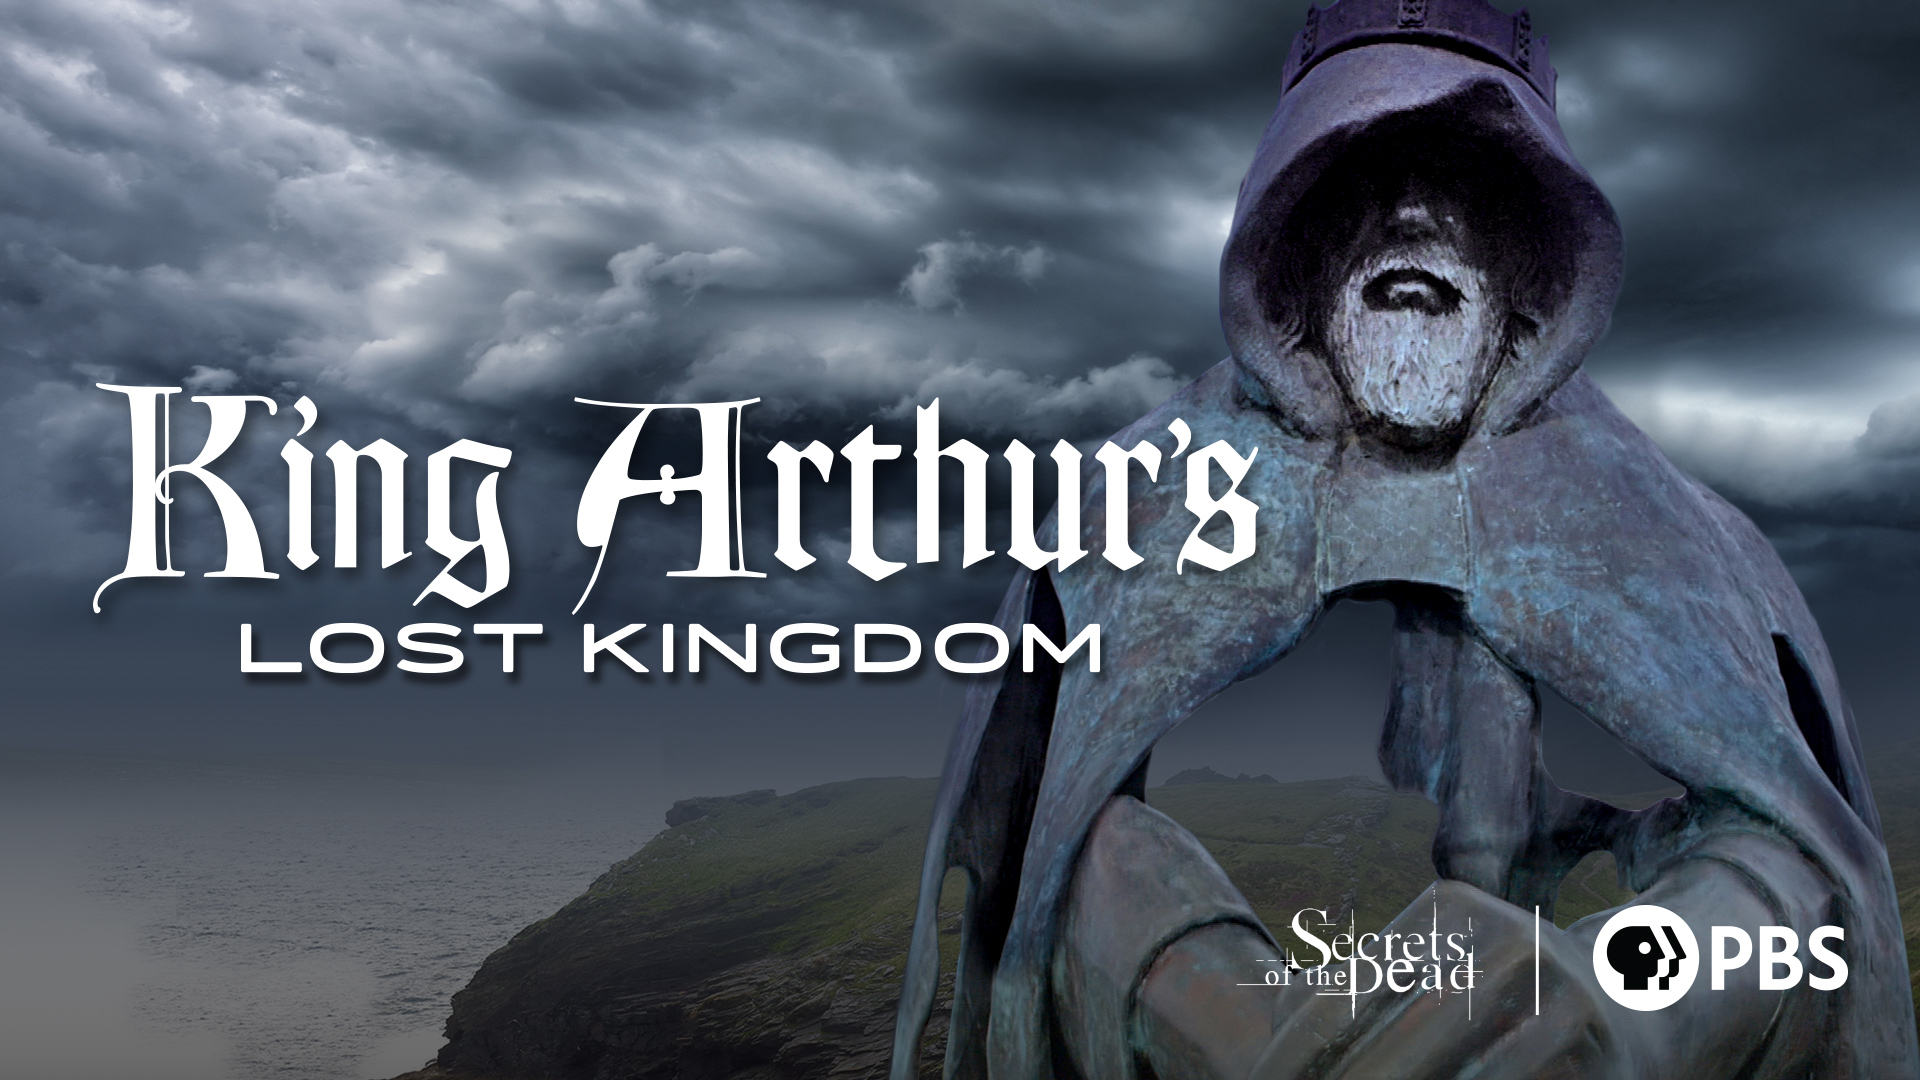 King Arthur's Lost Kingdom